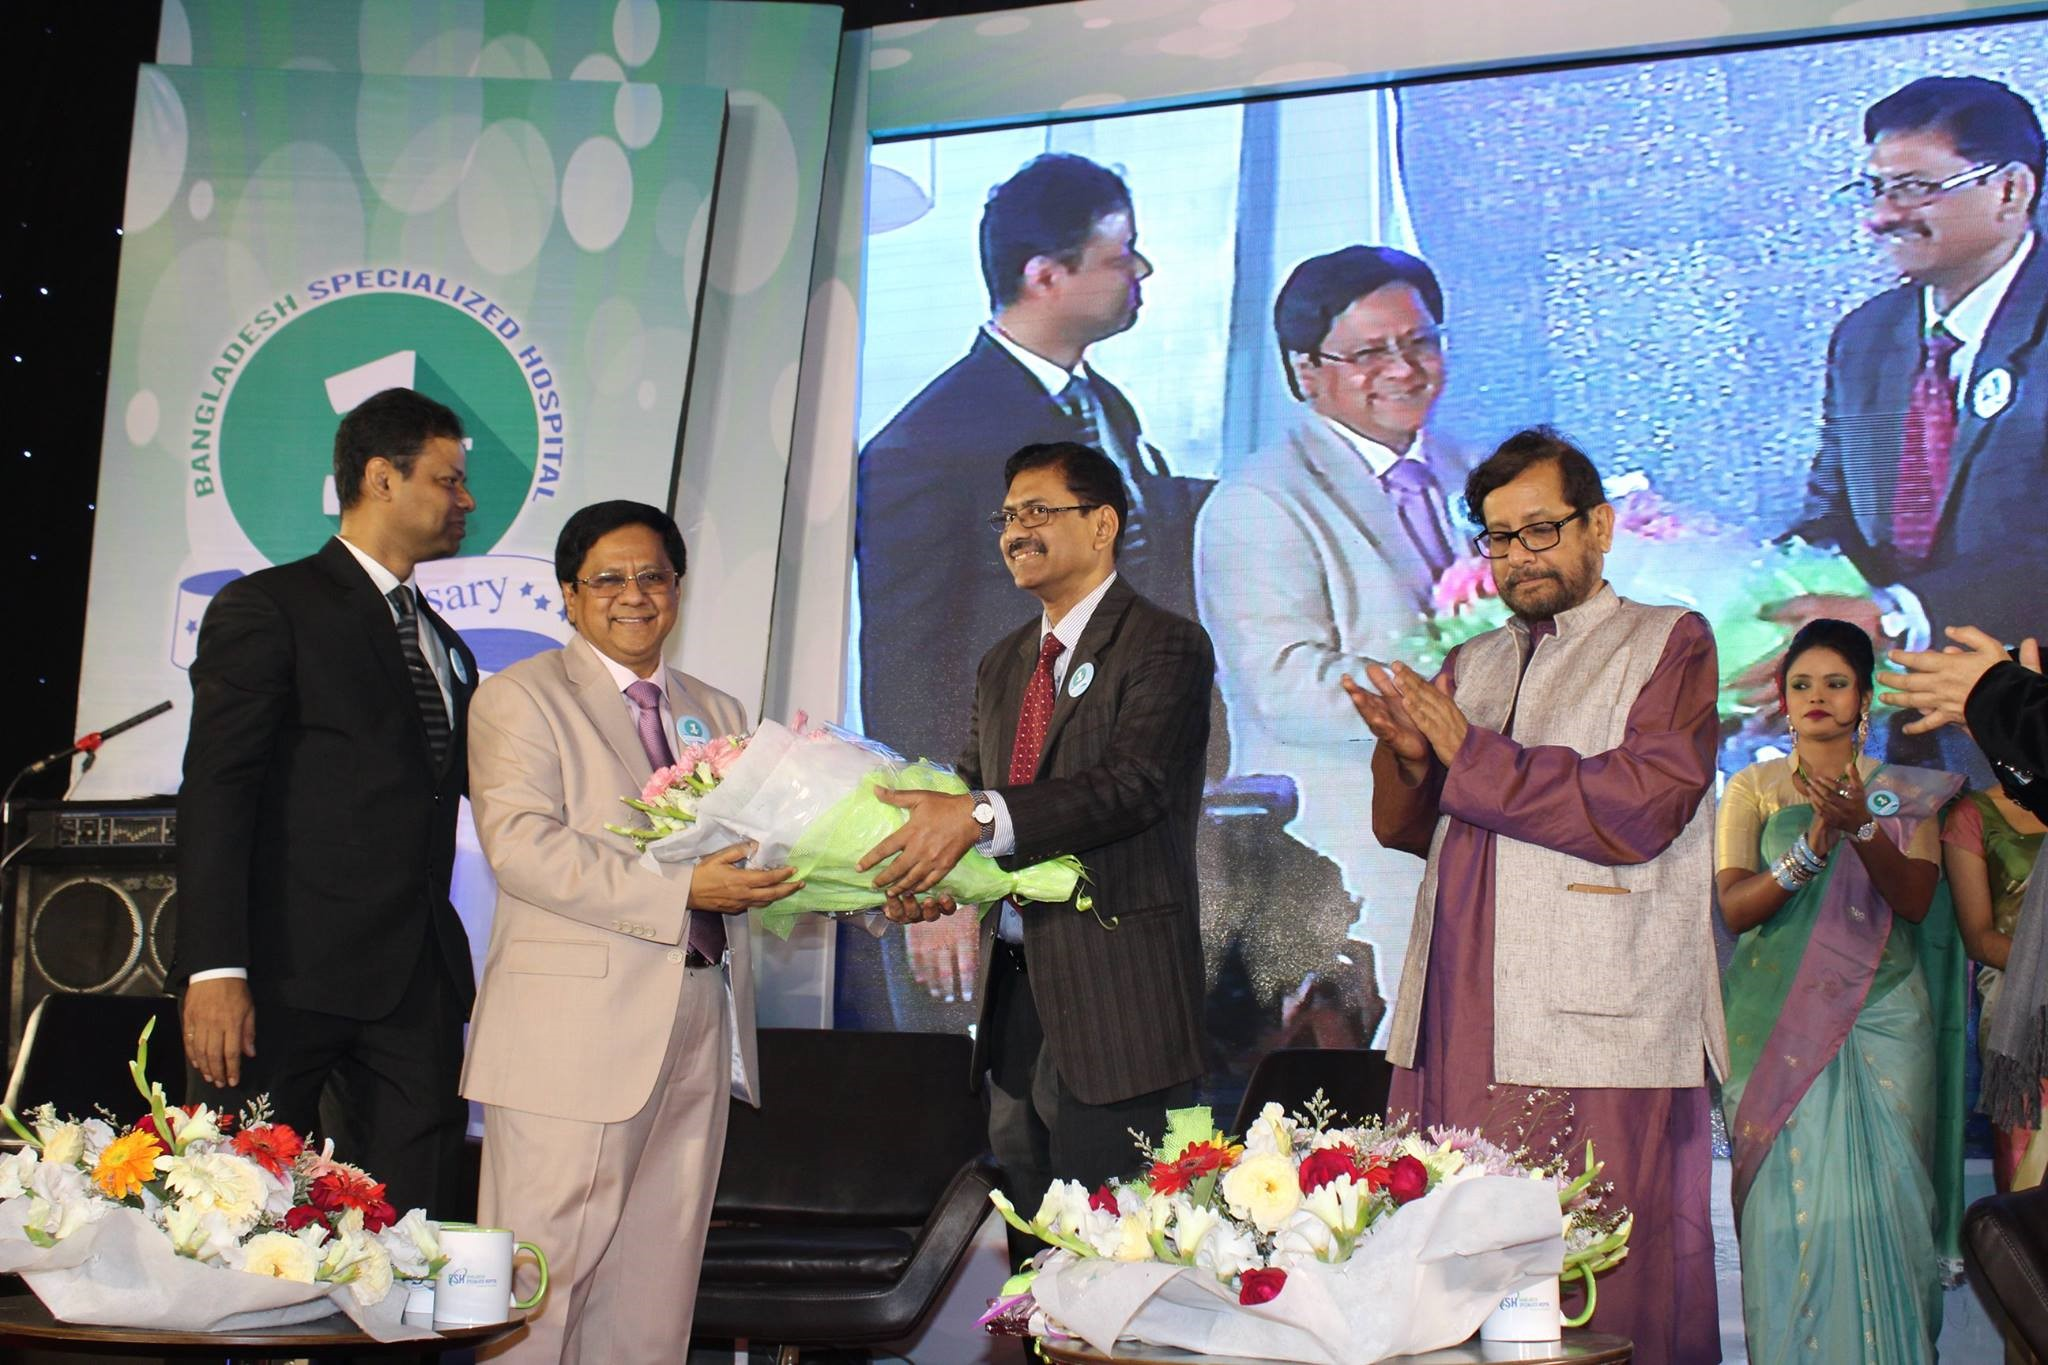 1st Annyversary - Bangladesh Specialized Hospital